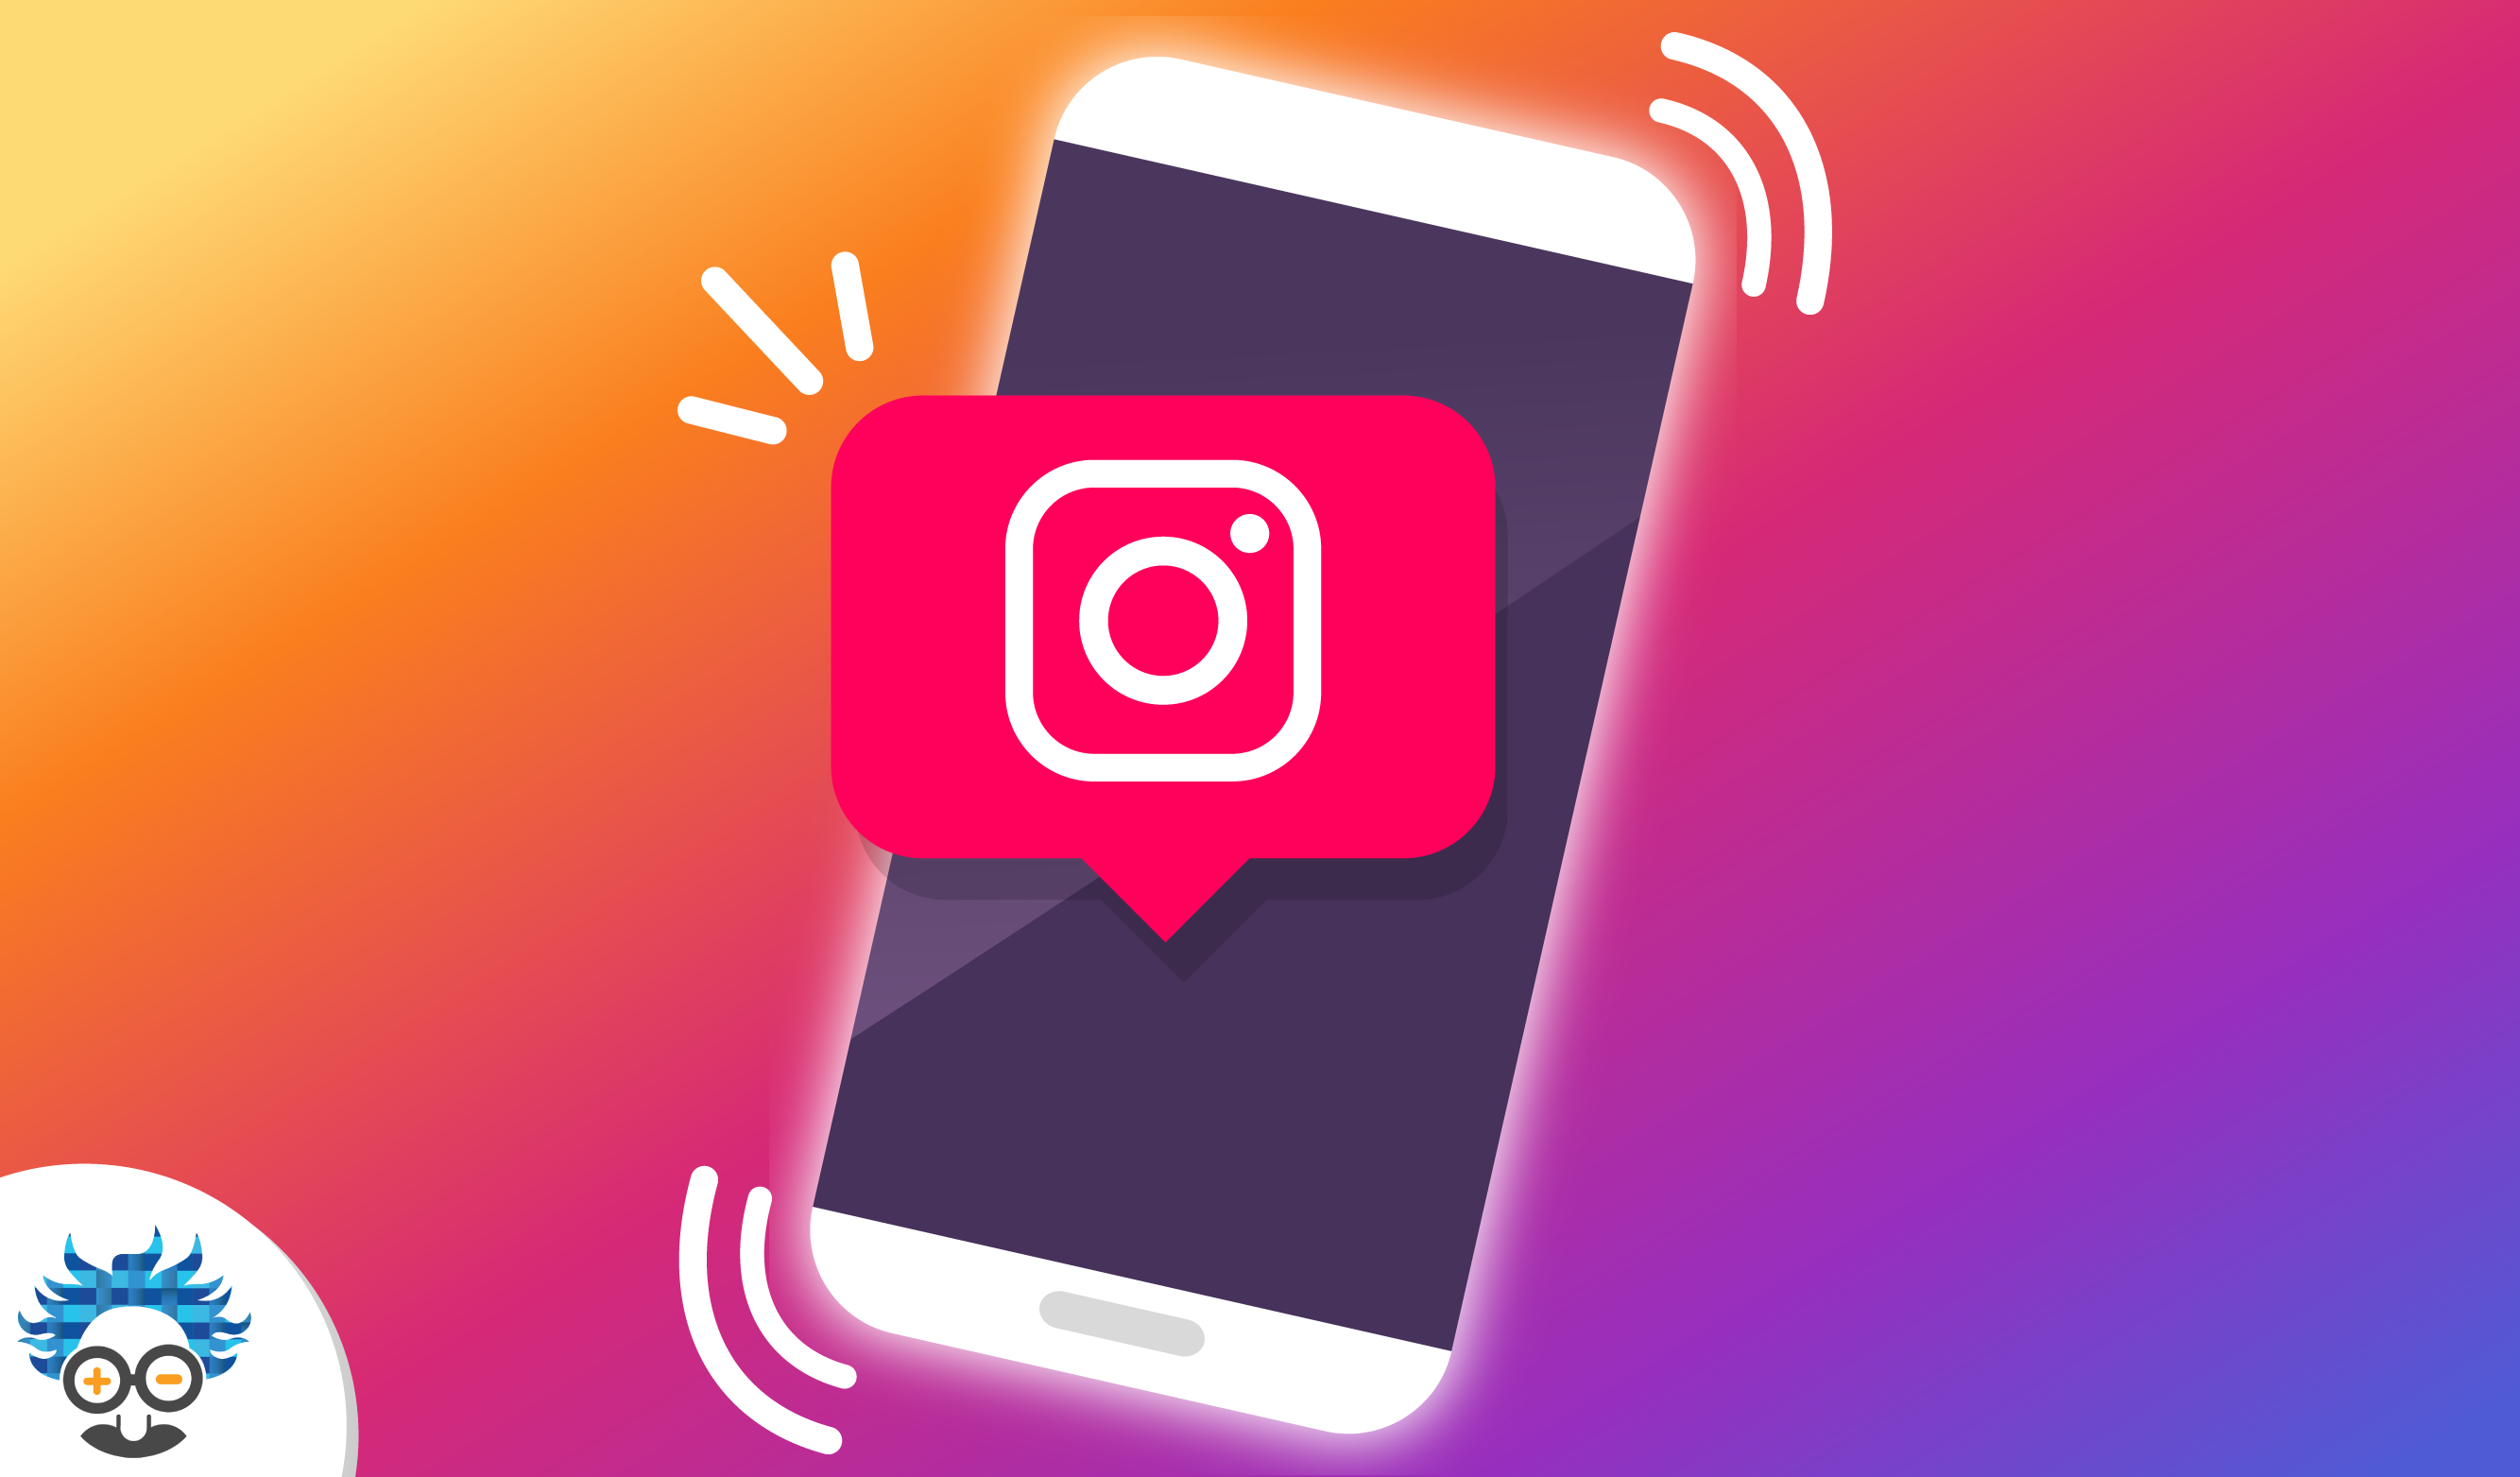 Instagram App: Best Practices Of Posting & Driving For Your Brand